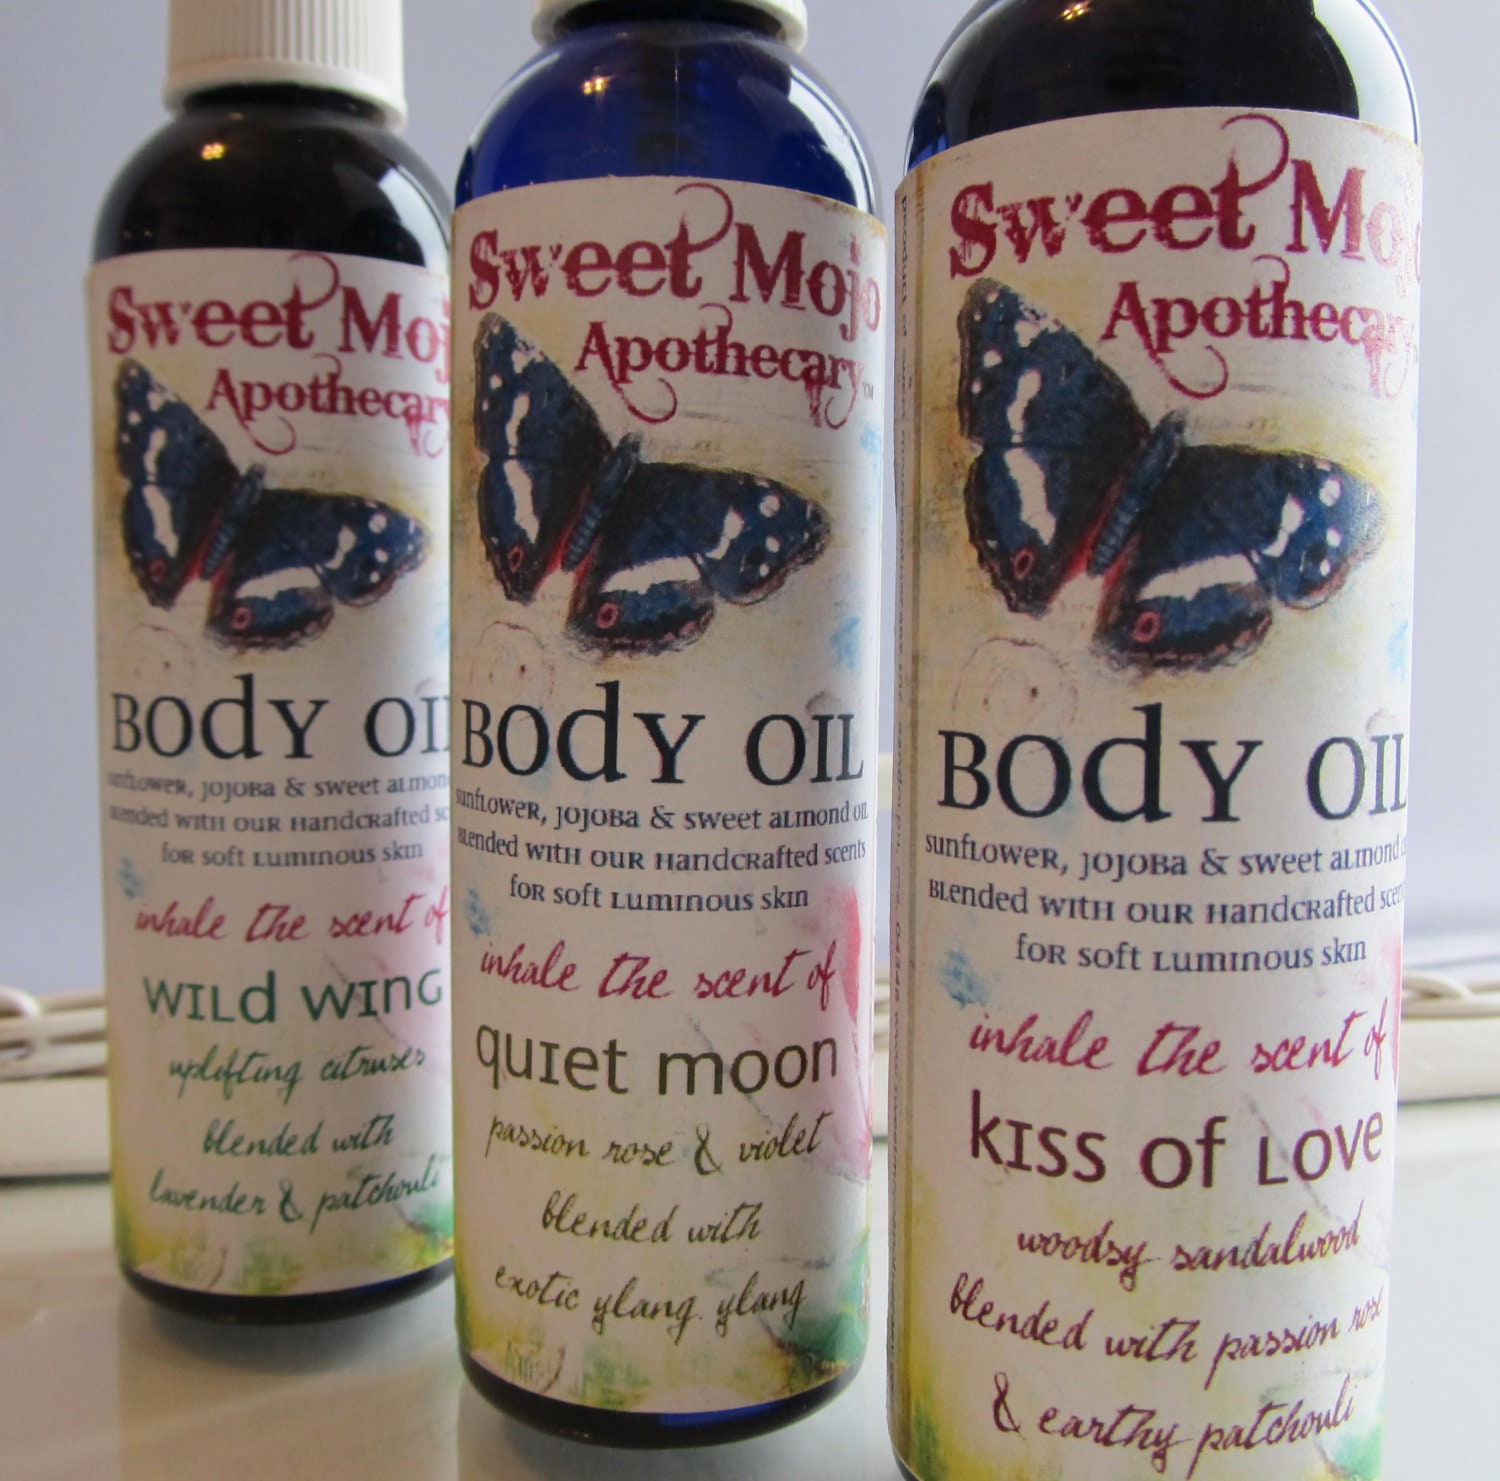 Kiss of Love Body Oil - SweetMojoApothecary